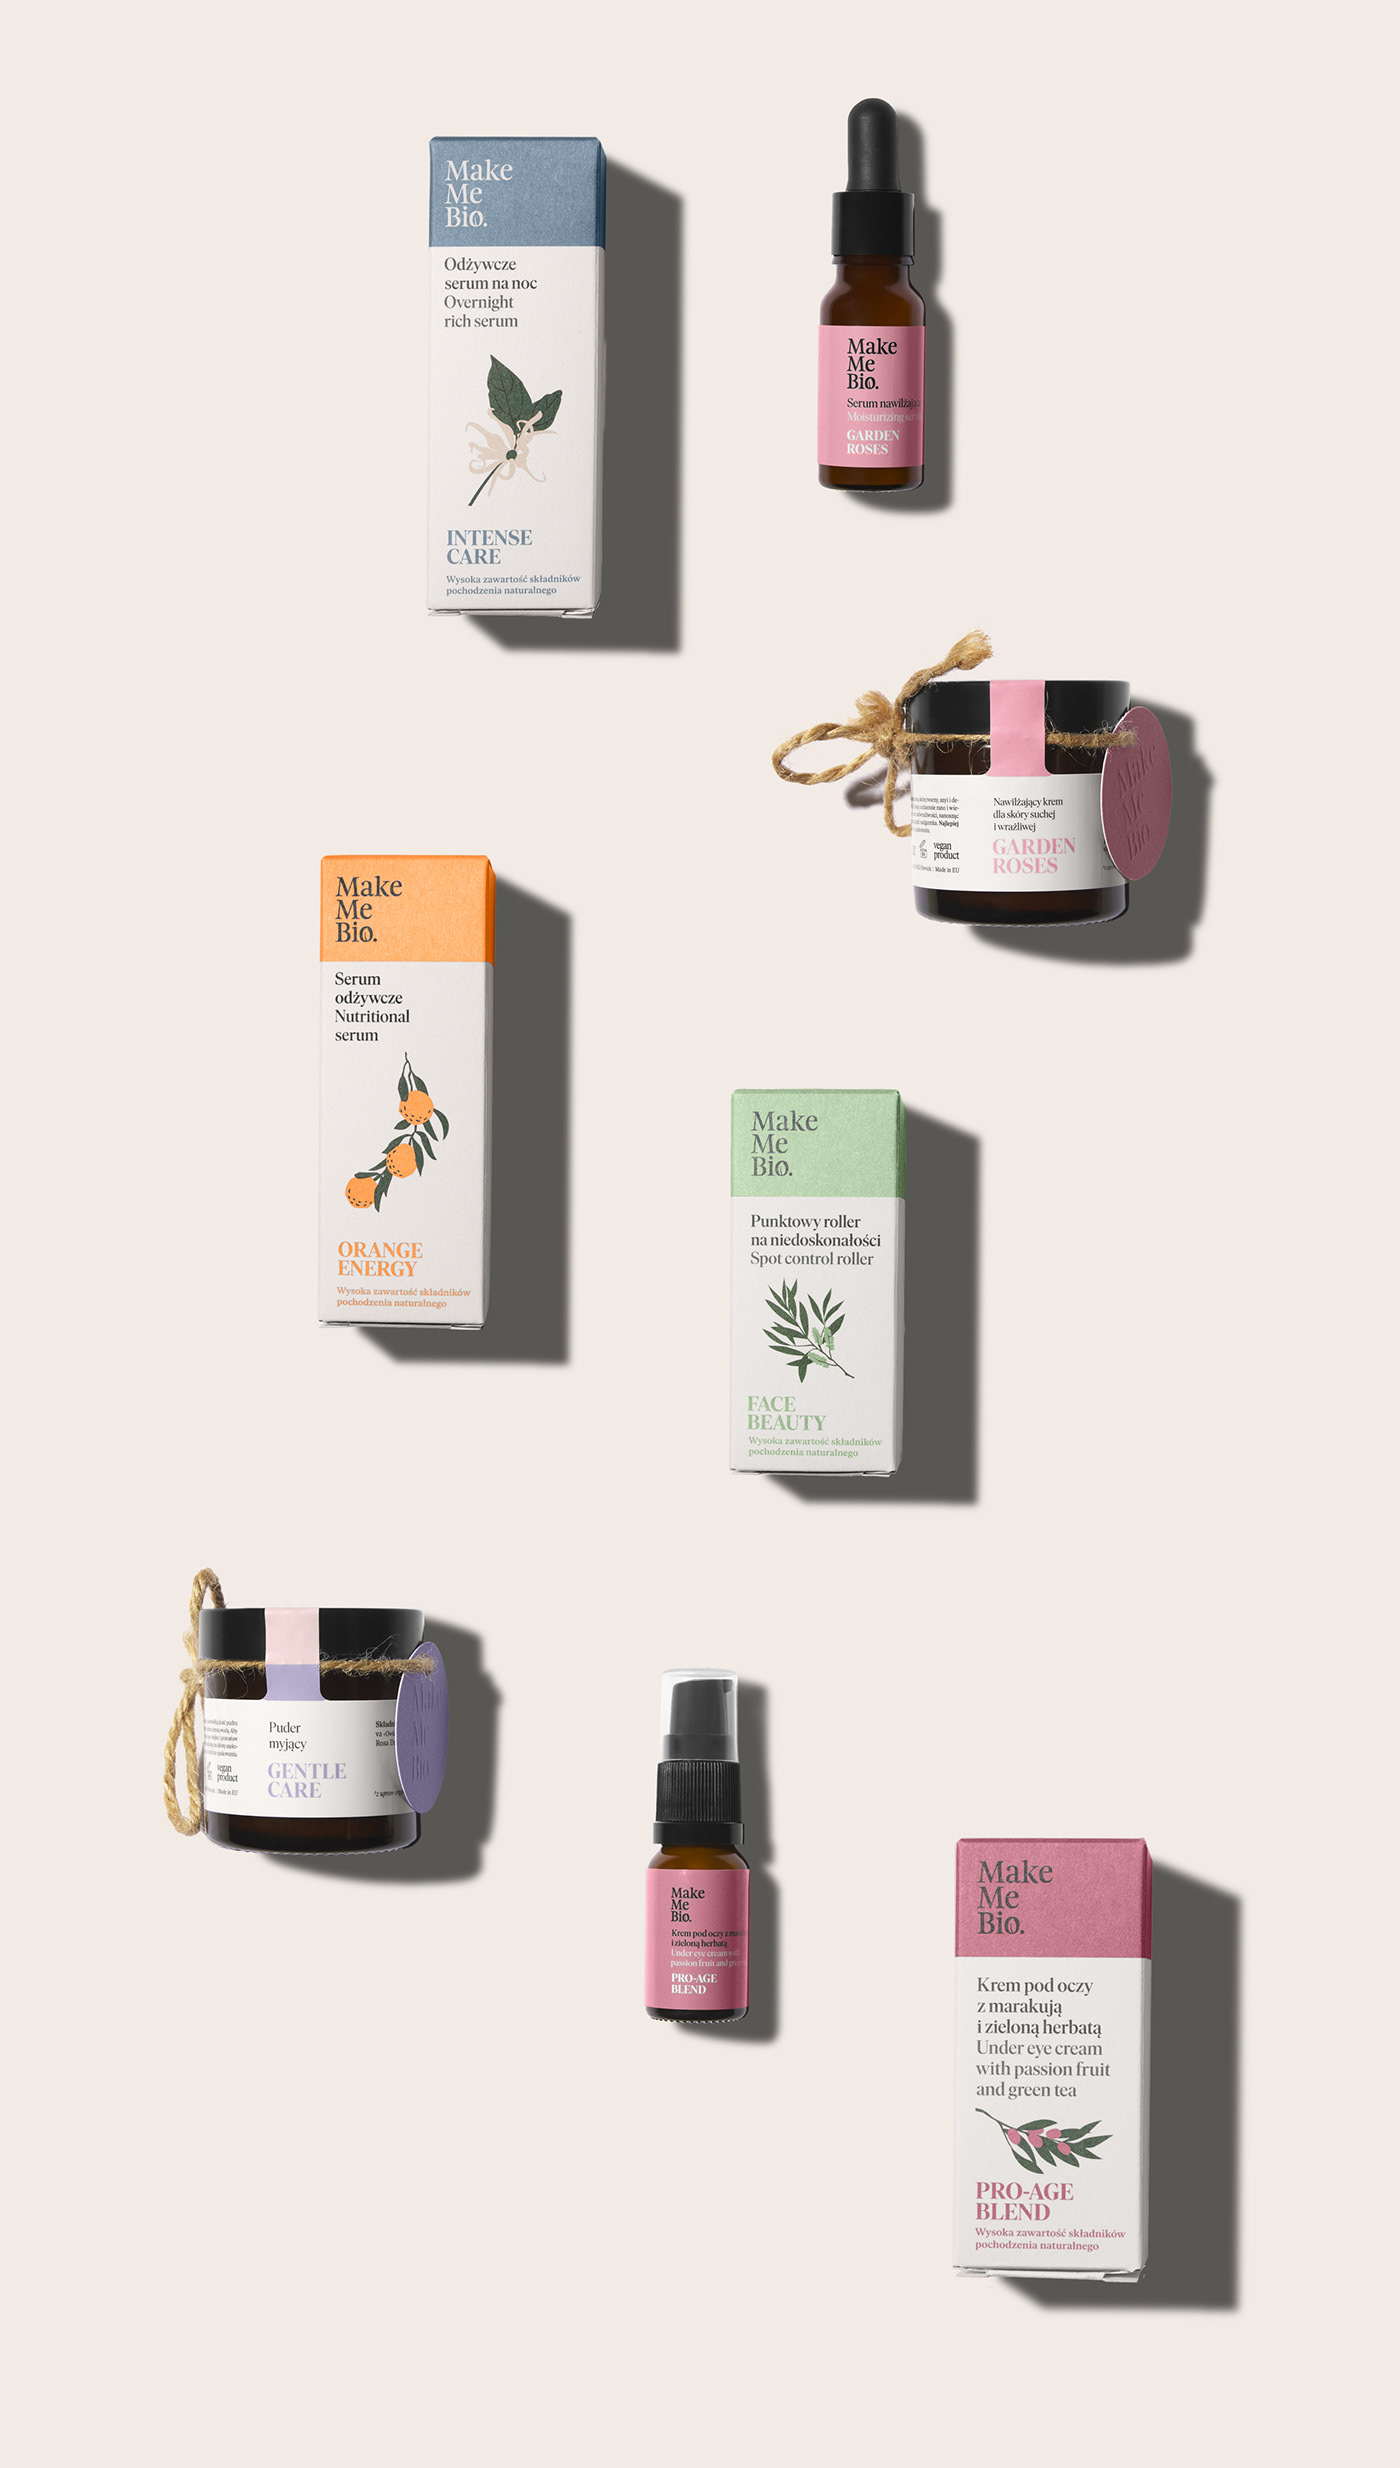 beauty Beauty brand bio cosmetics face cream ILLUSTRATION  Natural Ingredients Packaging Rebranging skincare